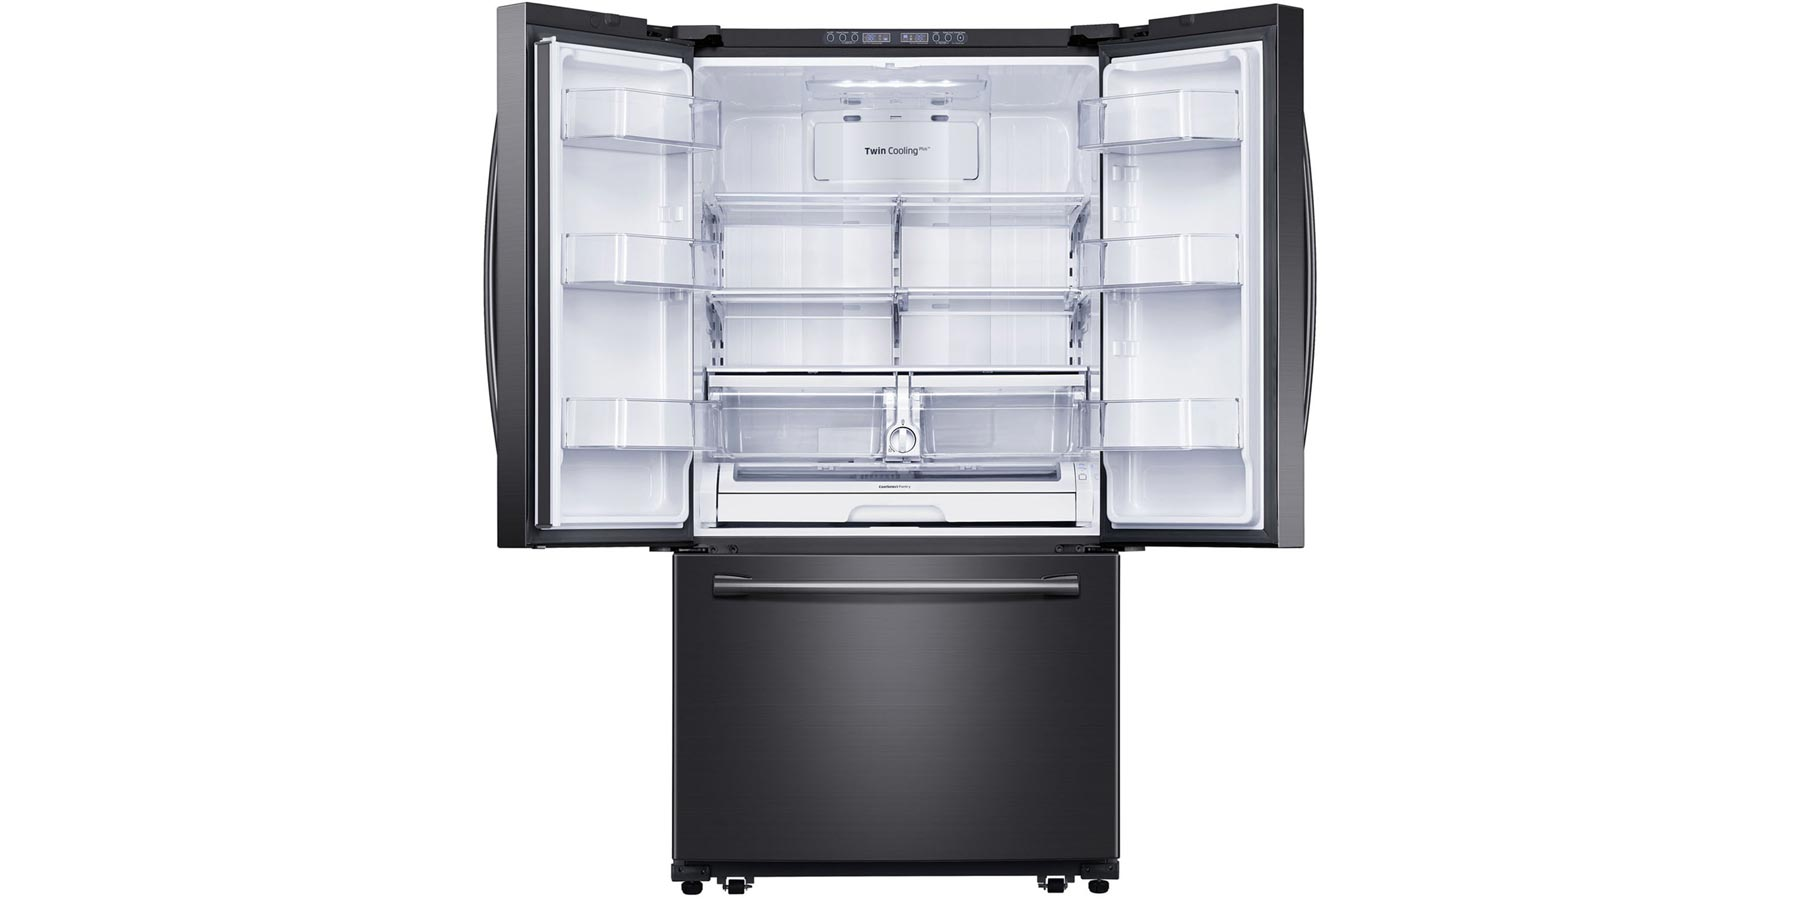 Samsung 26 Cu Ft French Door Refrigerator With Filtered